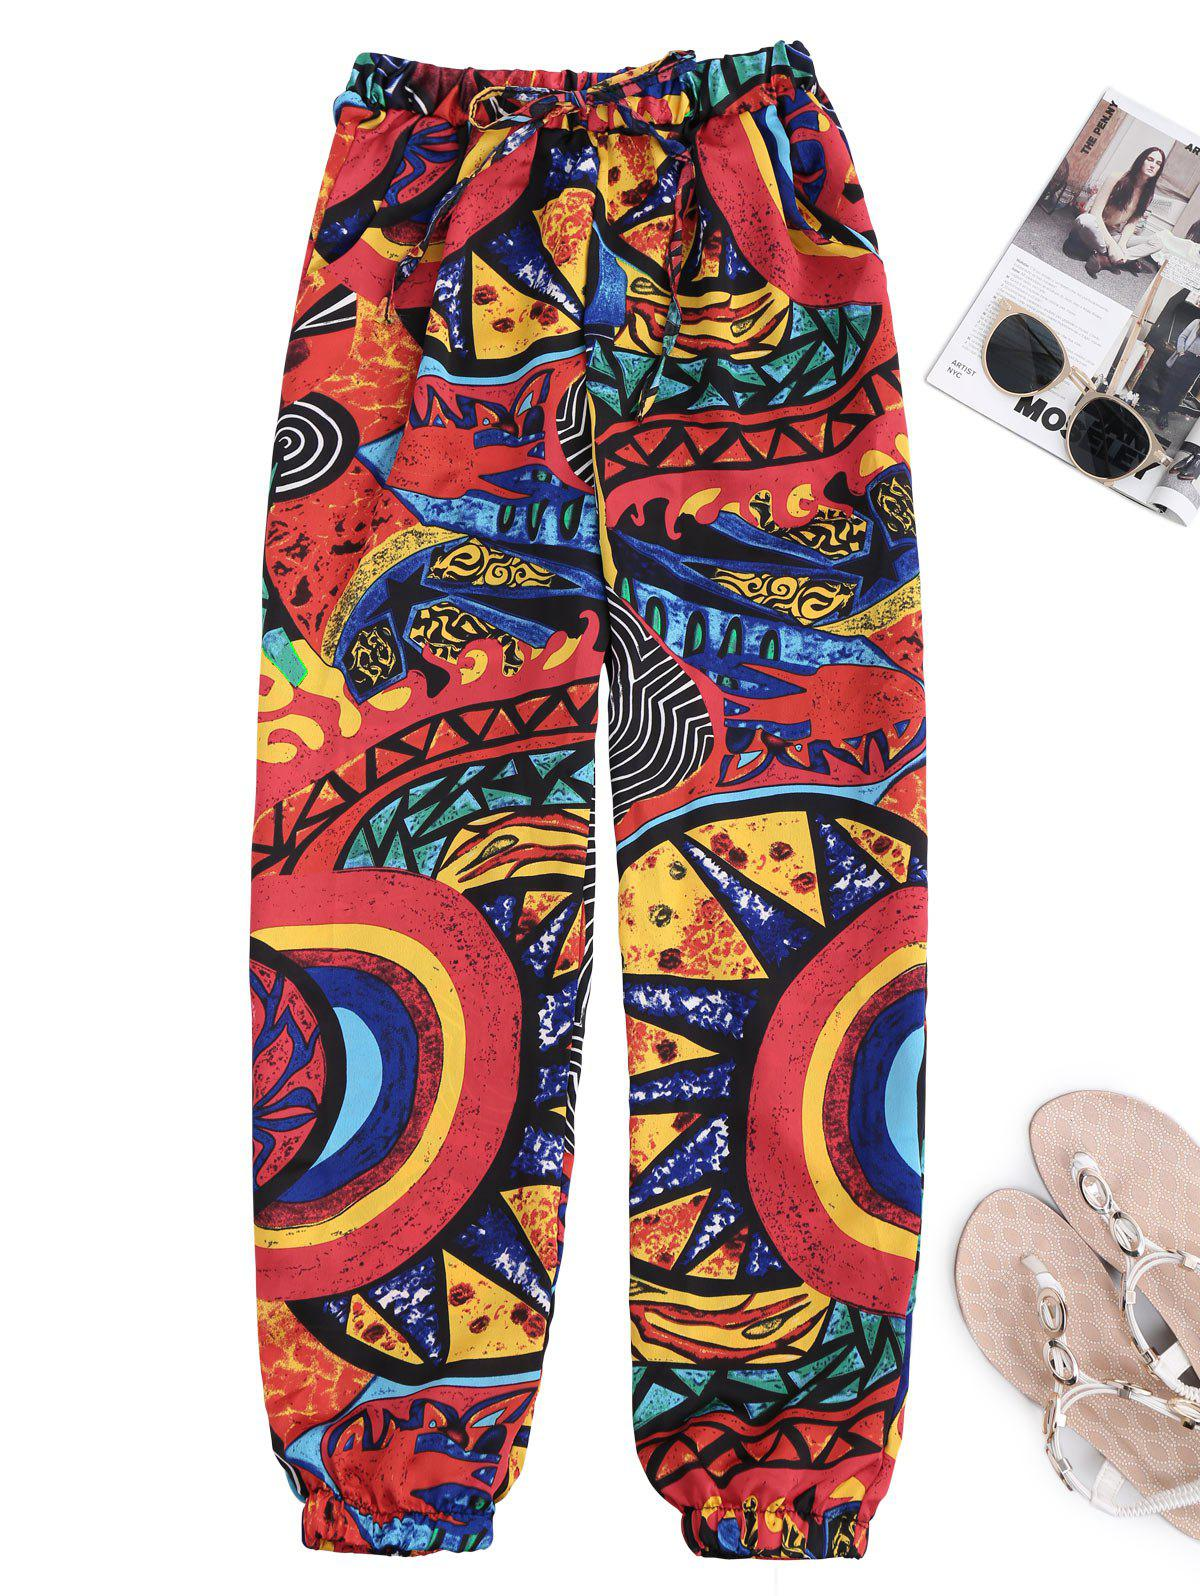 Graffiti Print Drawstring Tapered Beach Pants